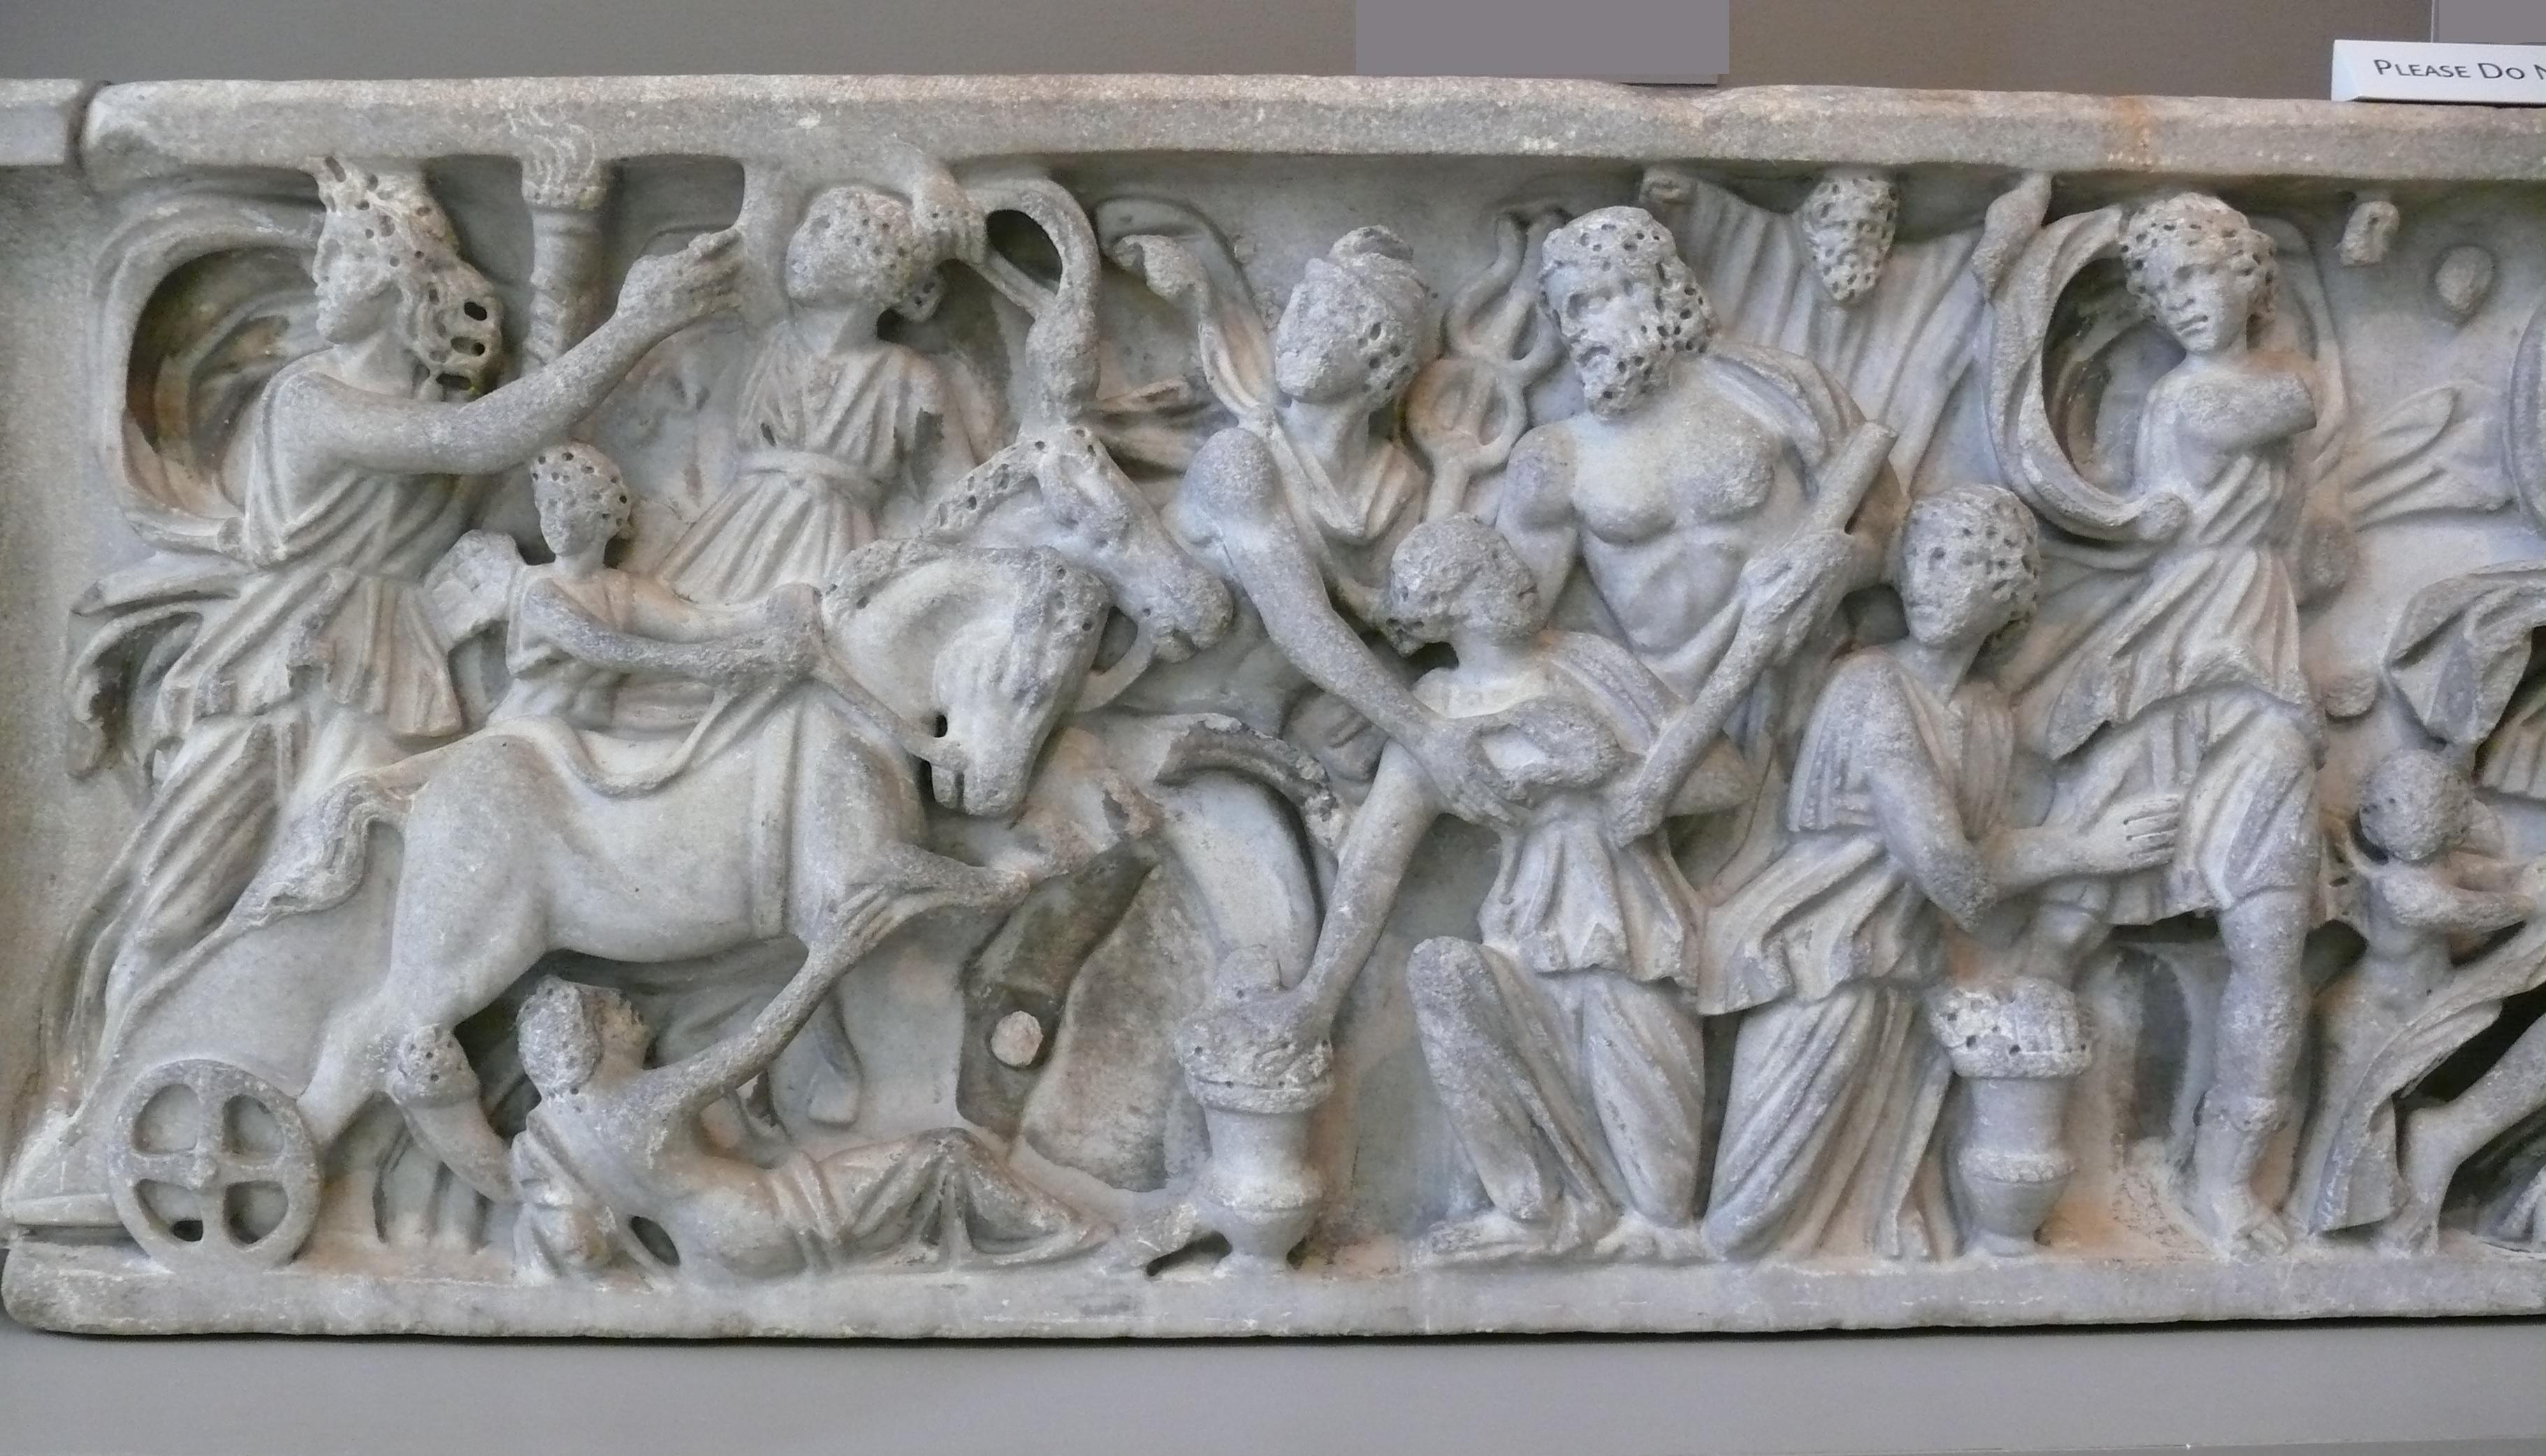 File:sarcophagus With The Abduction Of Persephonehades (Detail Inside Greek Wall Art (Image 8 of 20)